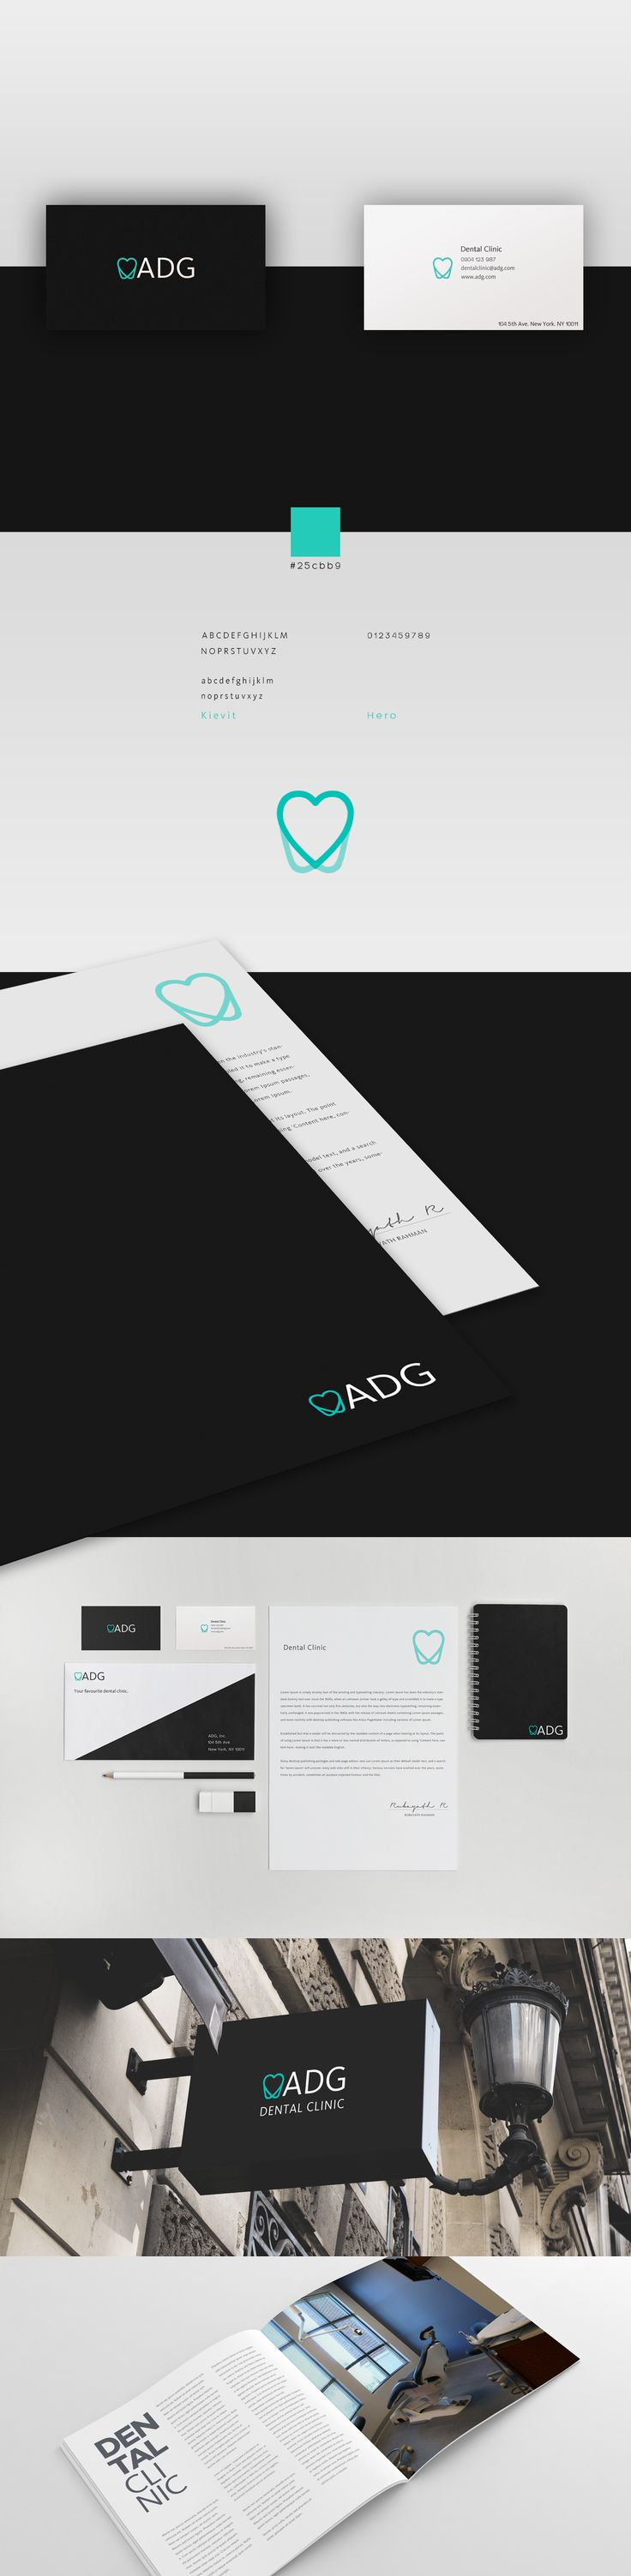 ADG Dental Clinic branding.                                                                                                                                                                                 More